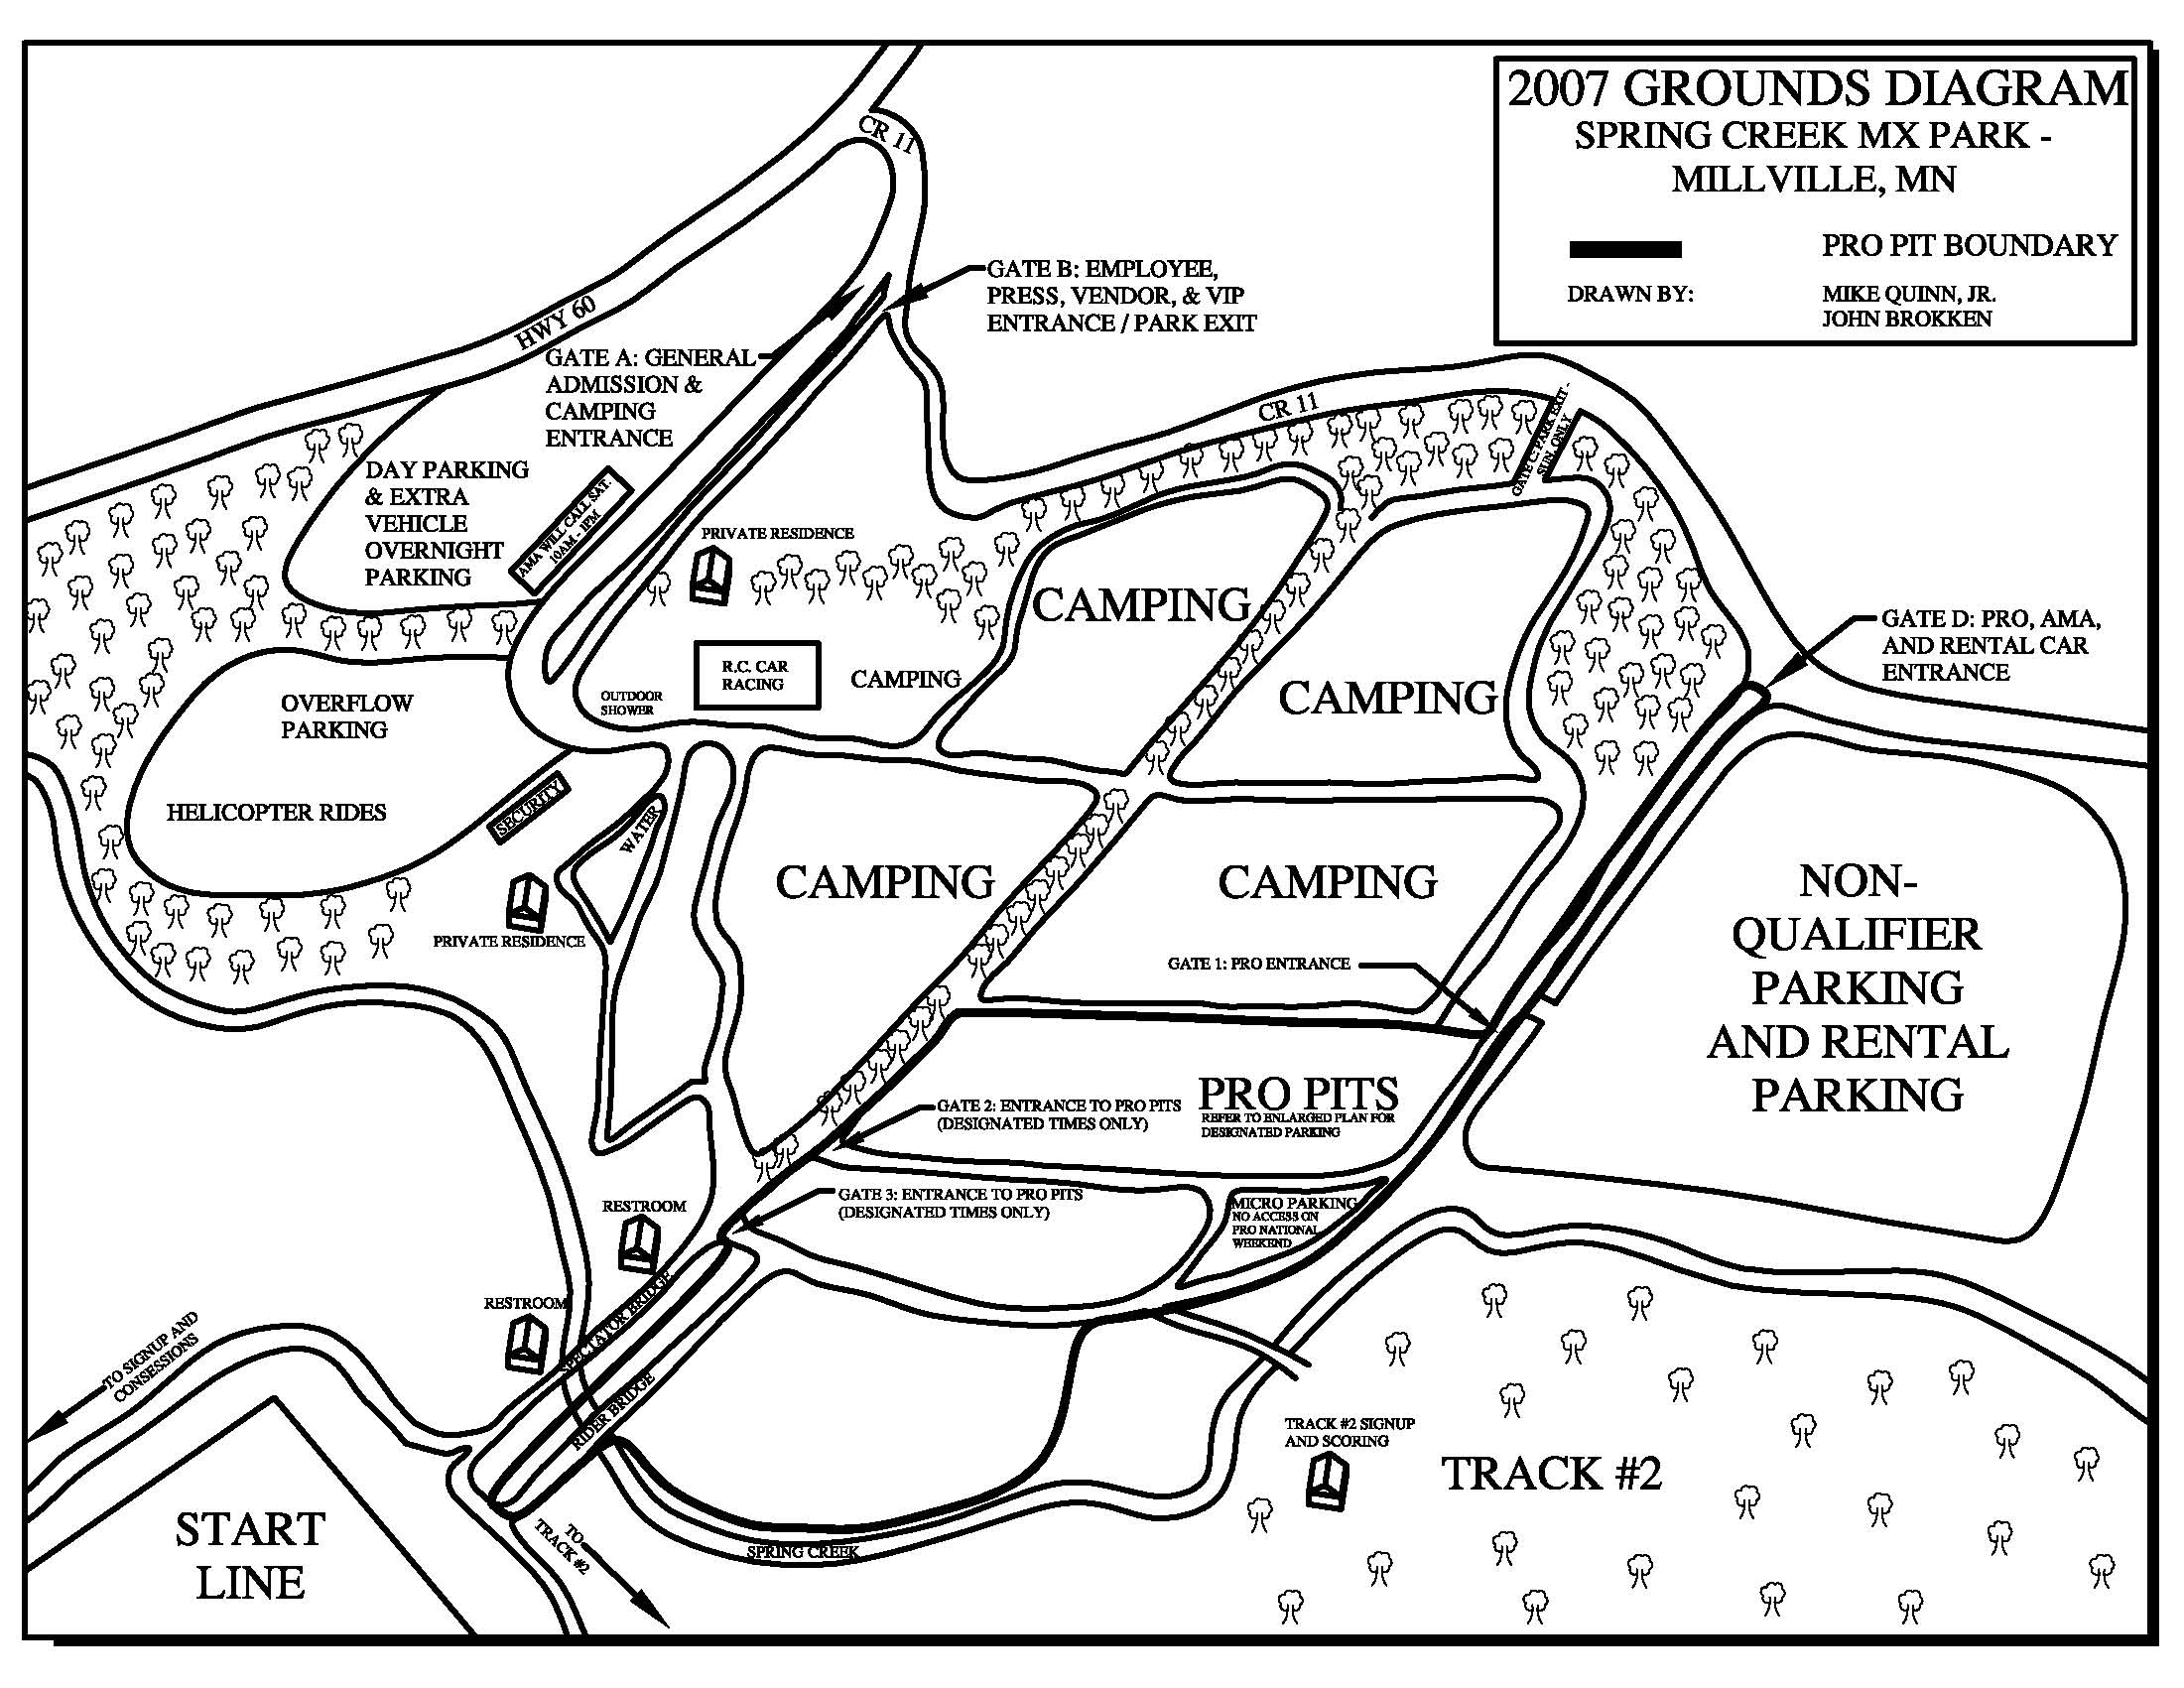 Springcreekmx Gt Facilities Diagram Amp Driving Directions